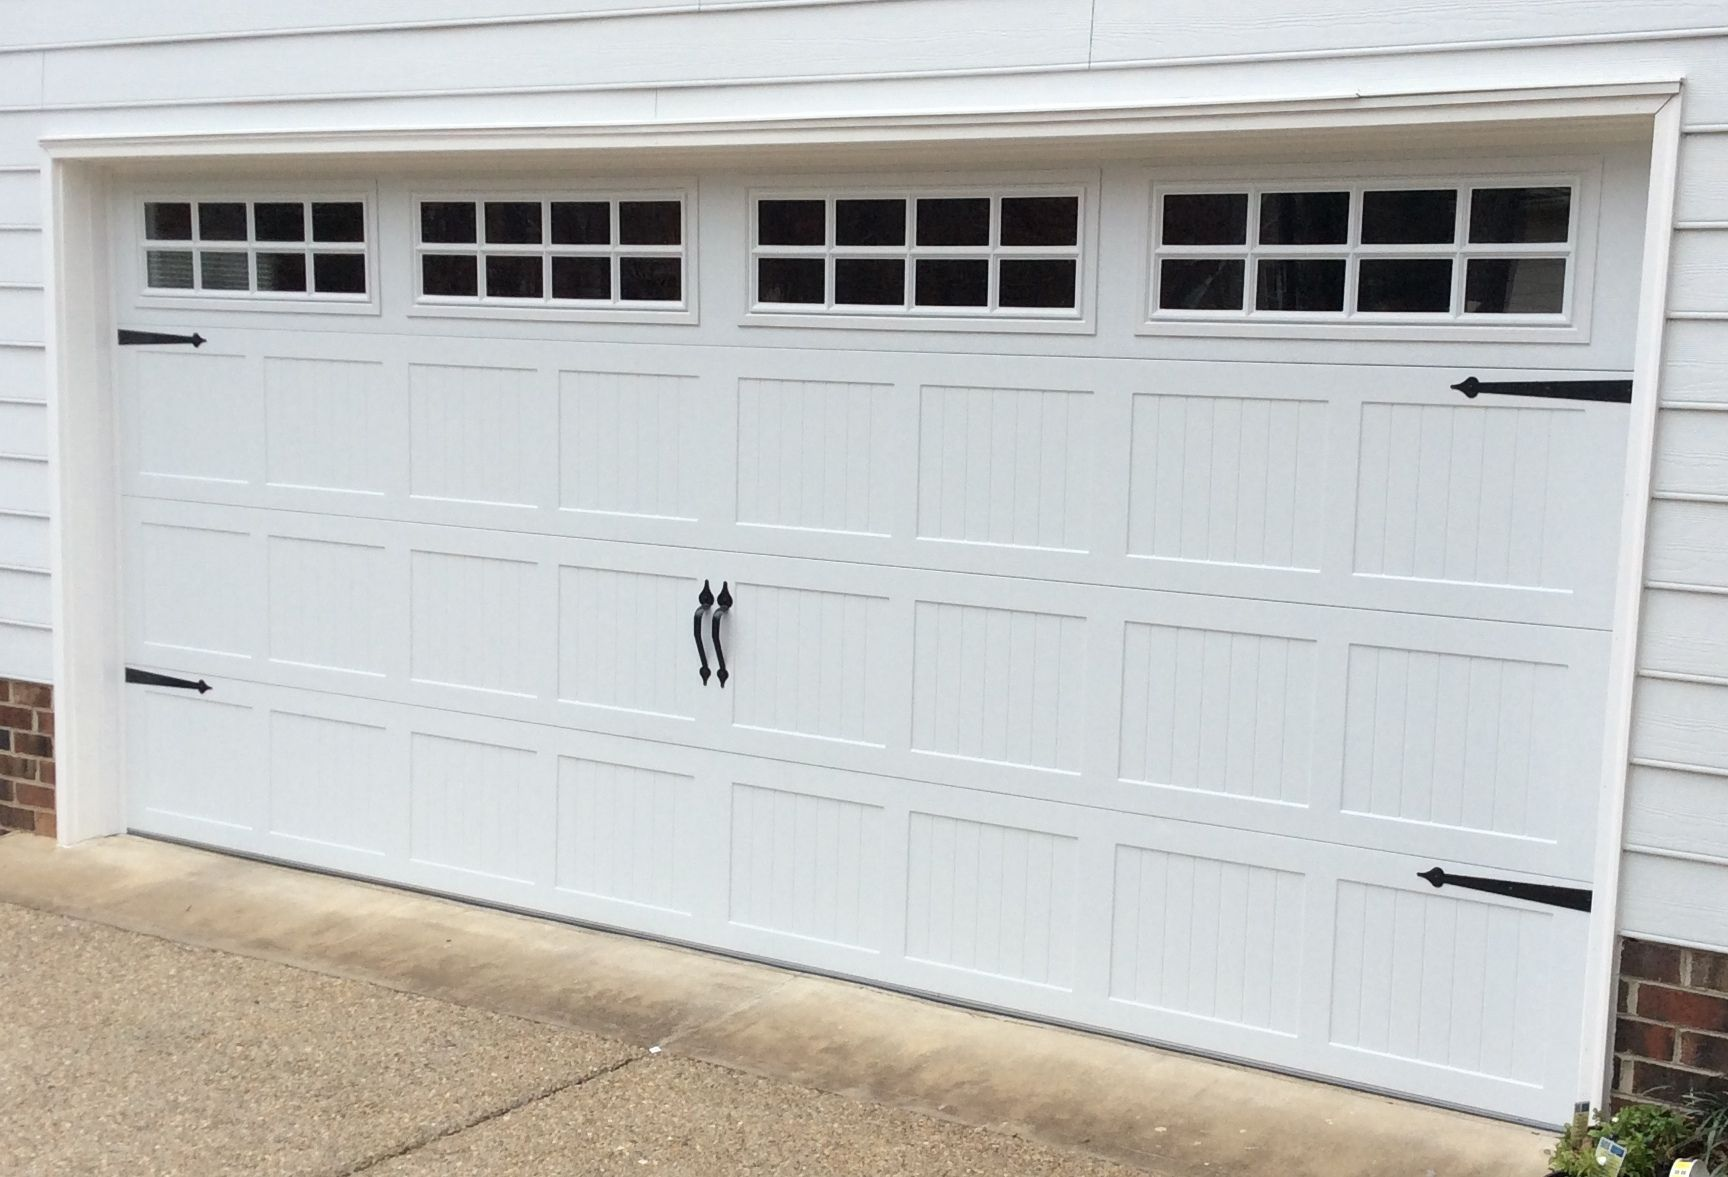 16x7 model 5216 short panel stamped double sided steel garage door 16x7 model 5216 short panel stamped double sided steel garage door with top square stockton inserts rubansaba